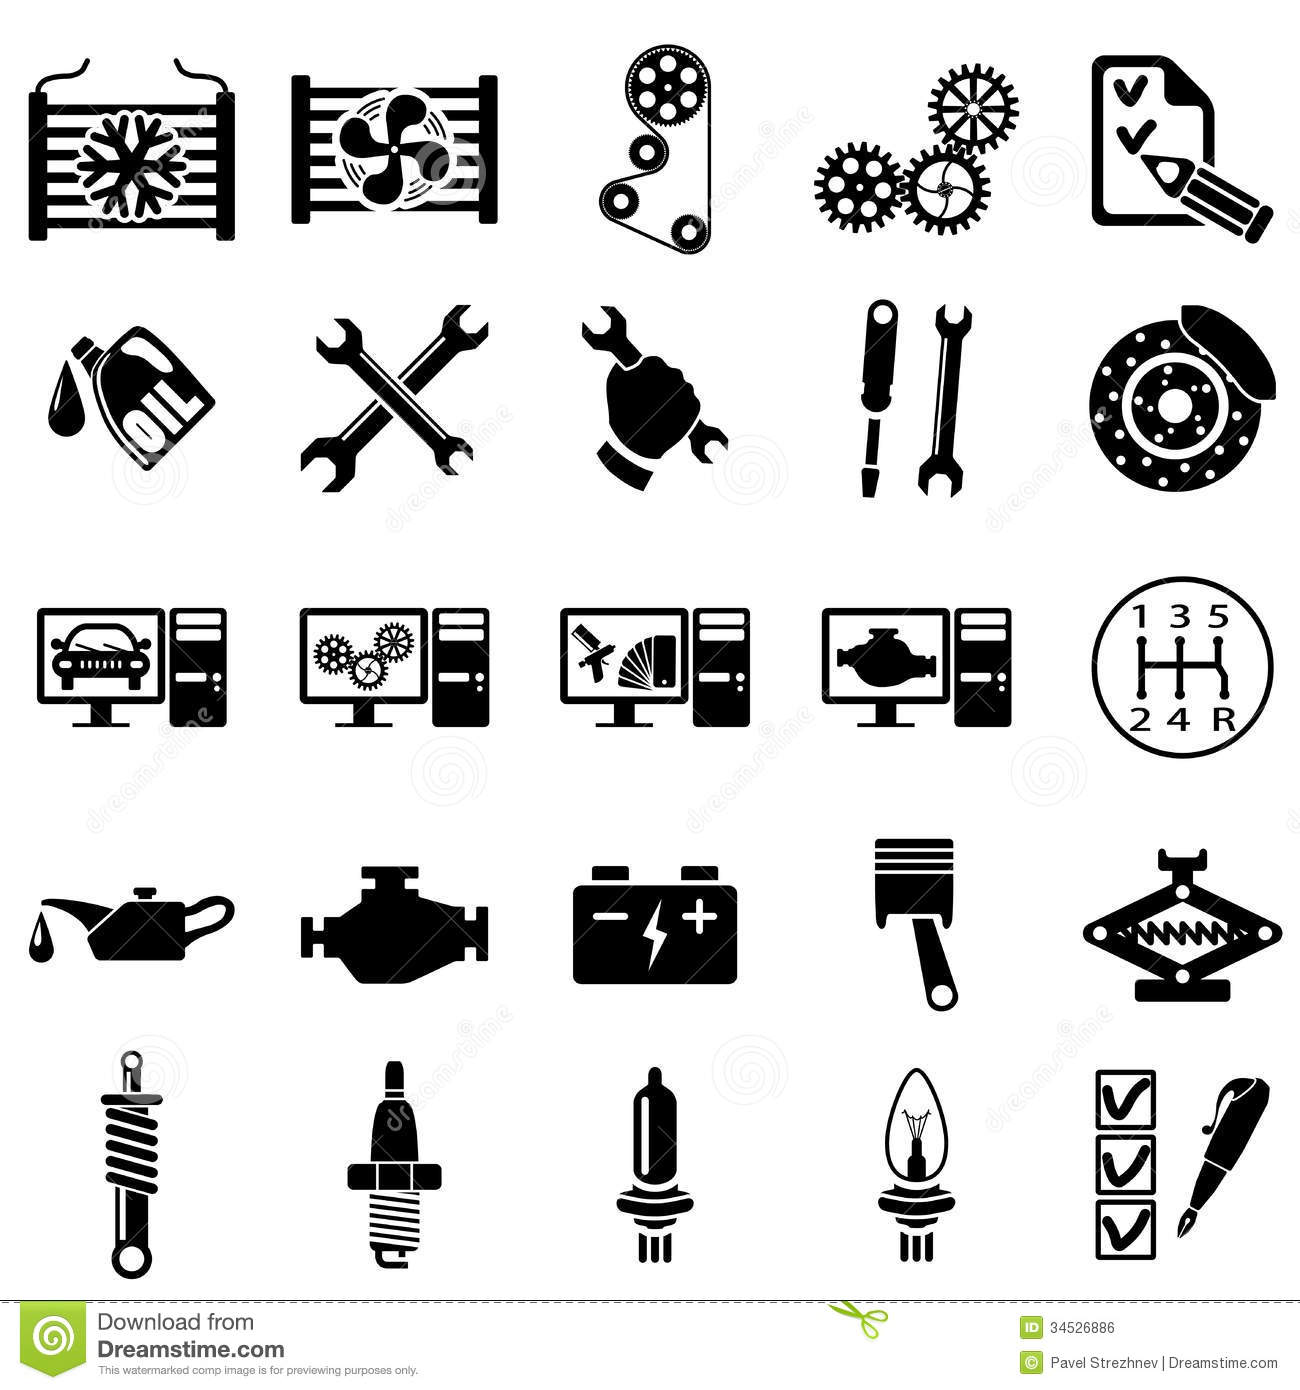 Auto repair Icons stock vector. Illustration of repair